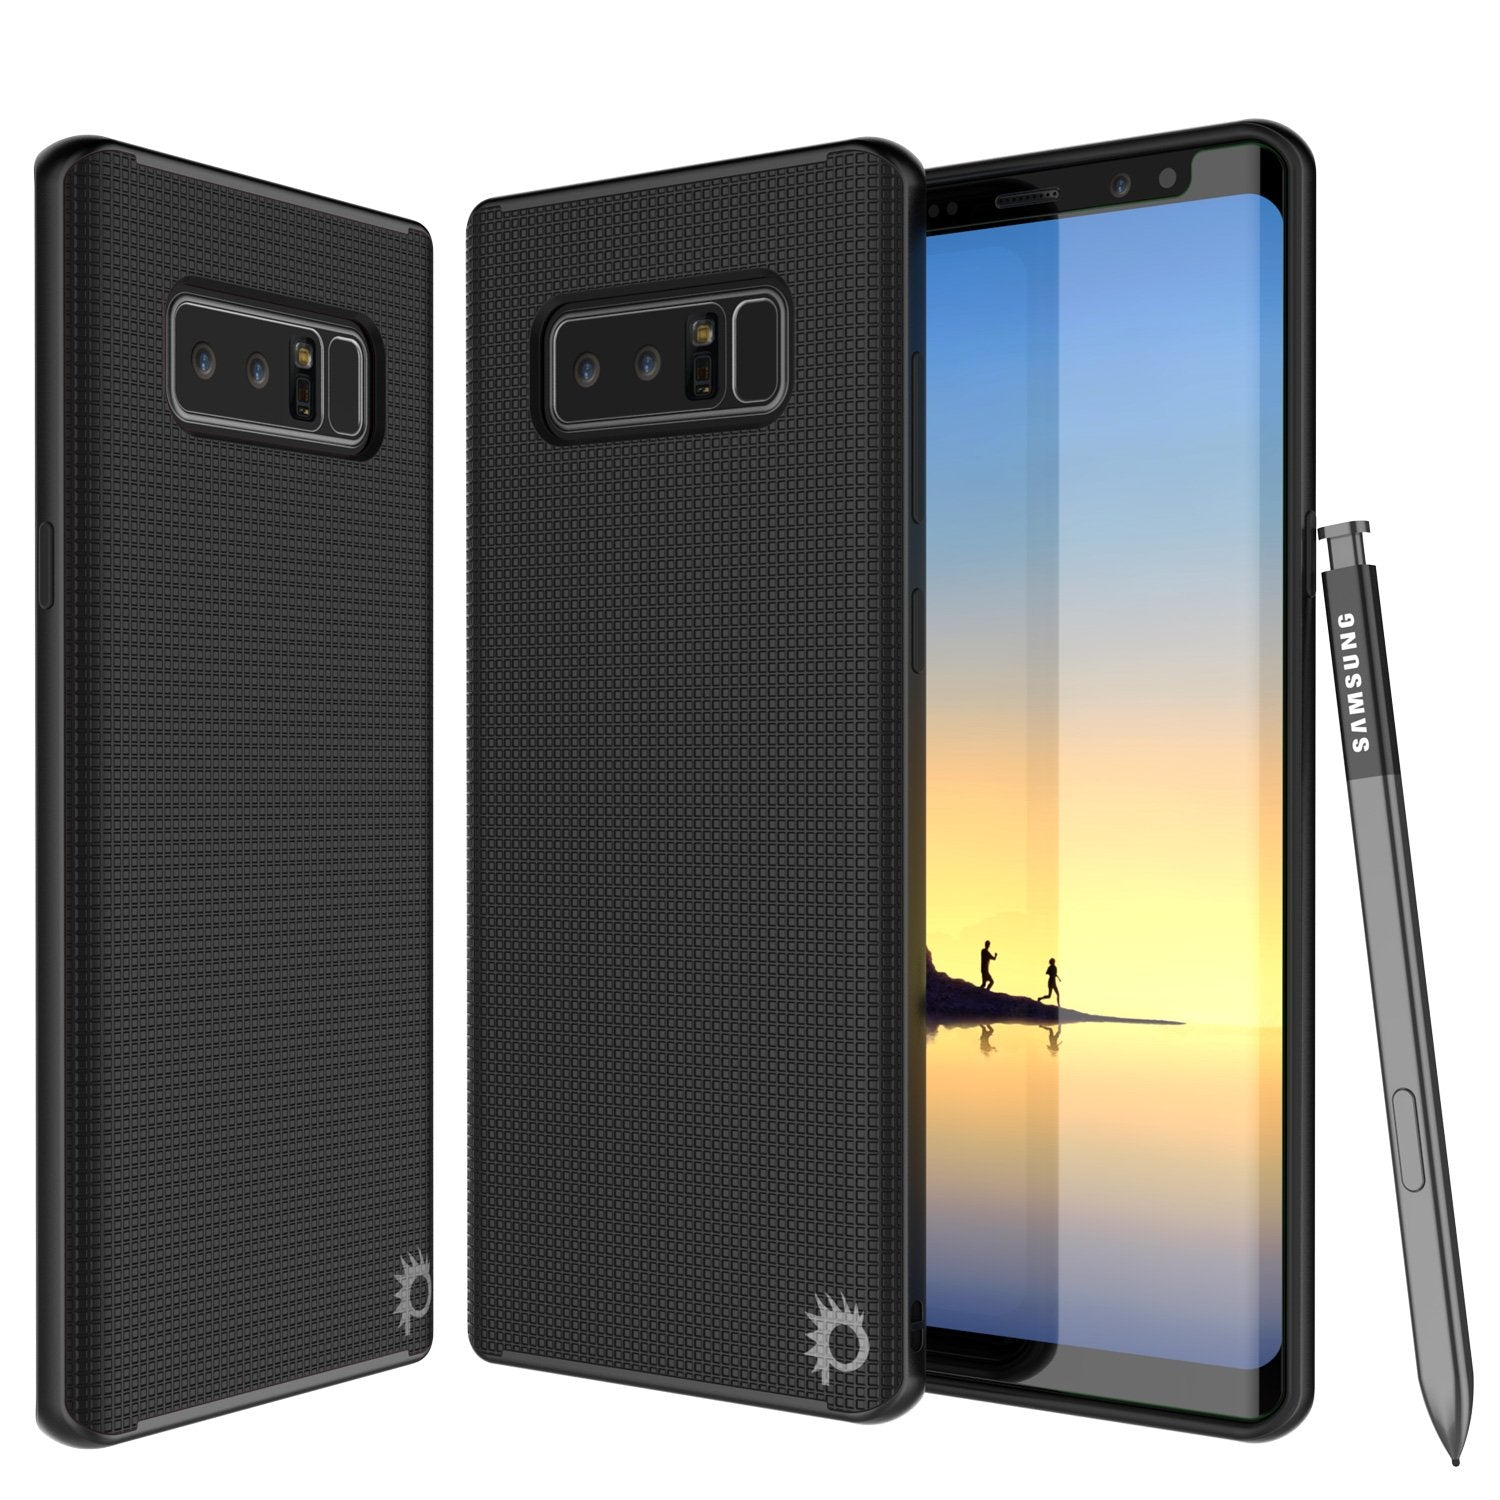 Galaxy Note 8 Case, PunkCase [Stealth Series] Hybrid 3-Piece Shockproof Dual Layer Cover [Non-Slip] [Soft TPU + PC Bumper] with PUNKSHIELD Screen Protector for Samsung Note 8 [Black]